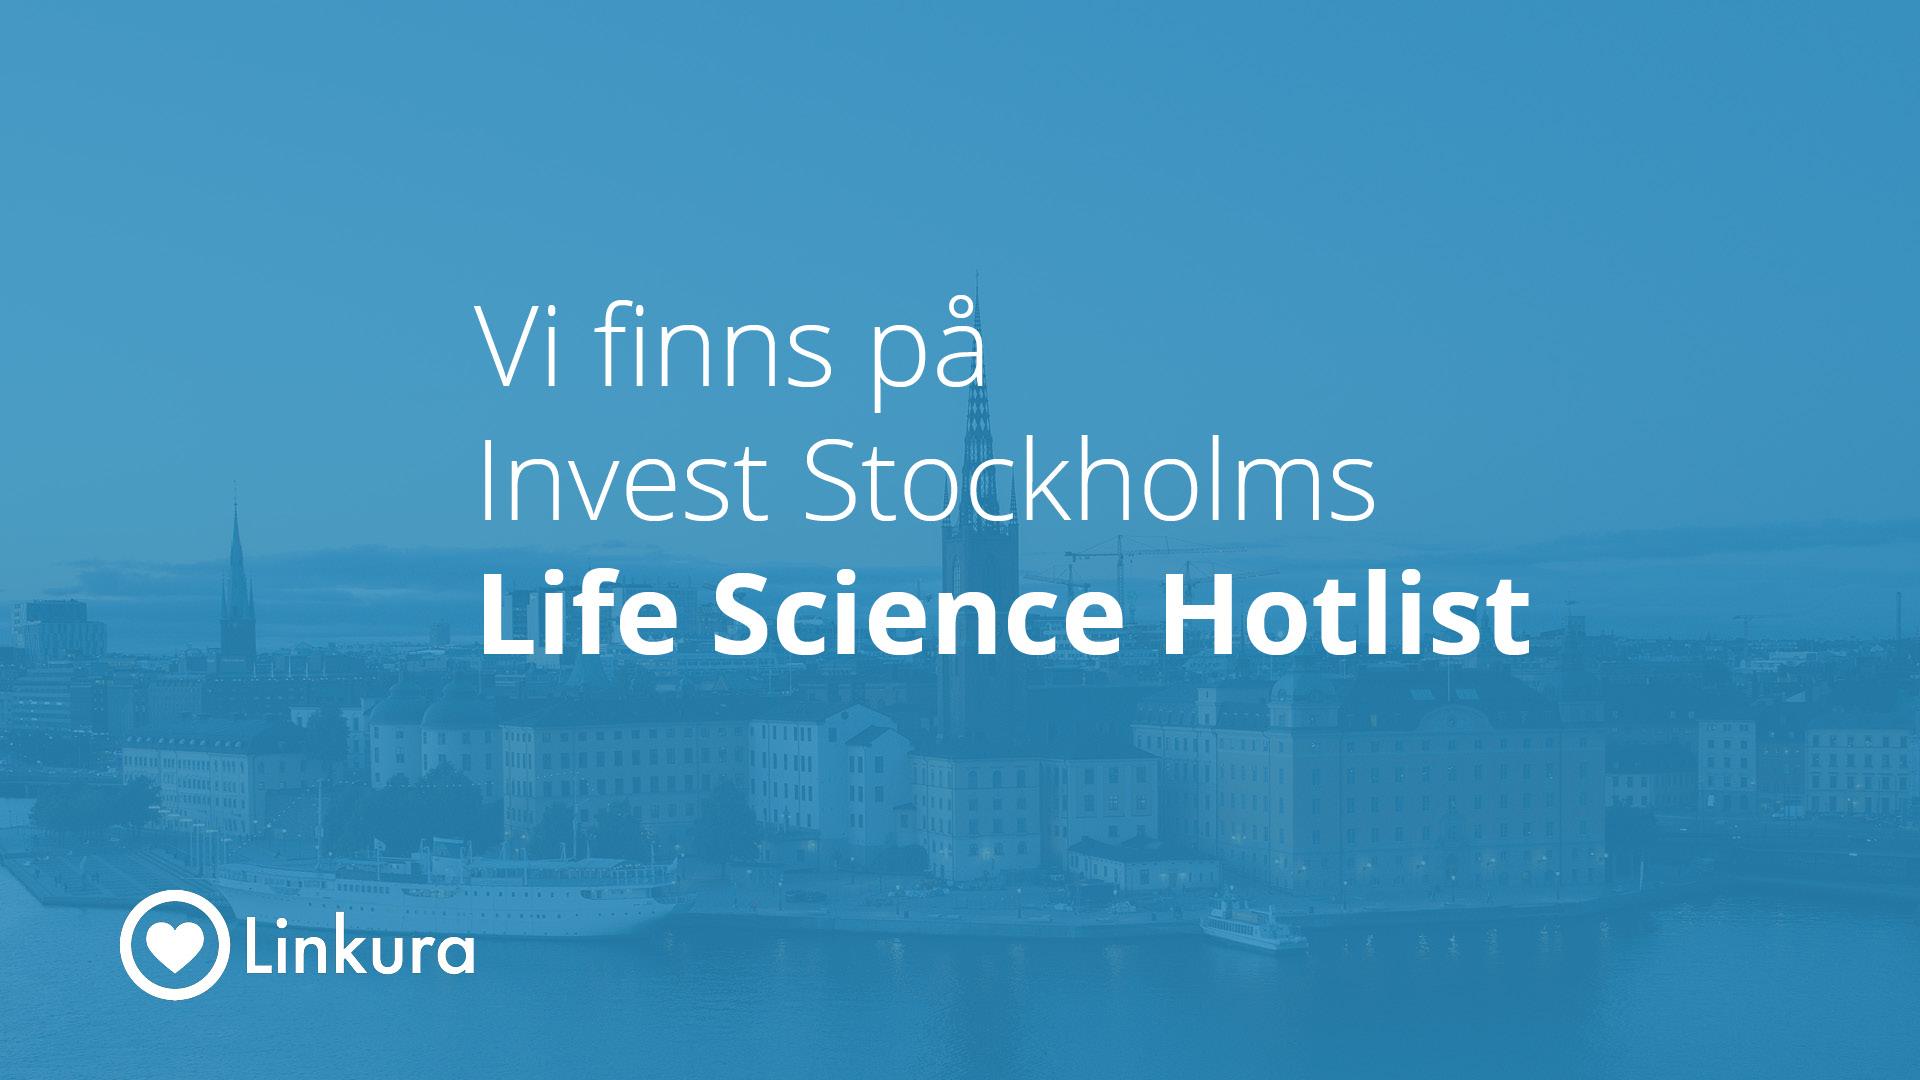 Linkura antagna på Invest Stockholms Life Science Hotlist